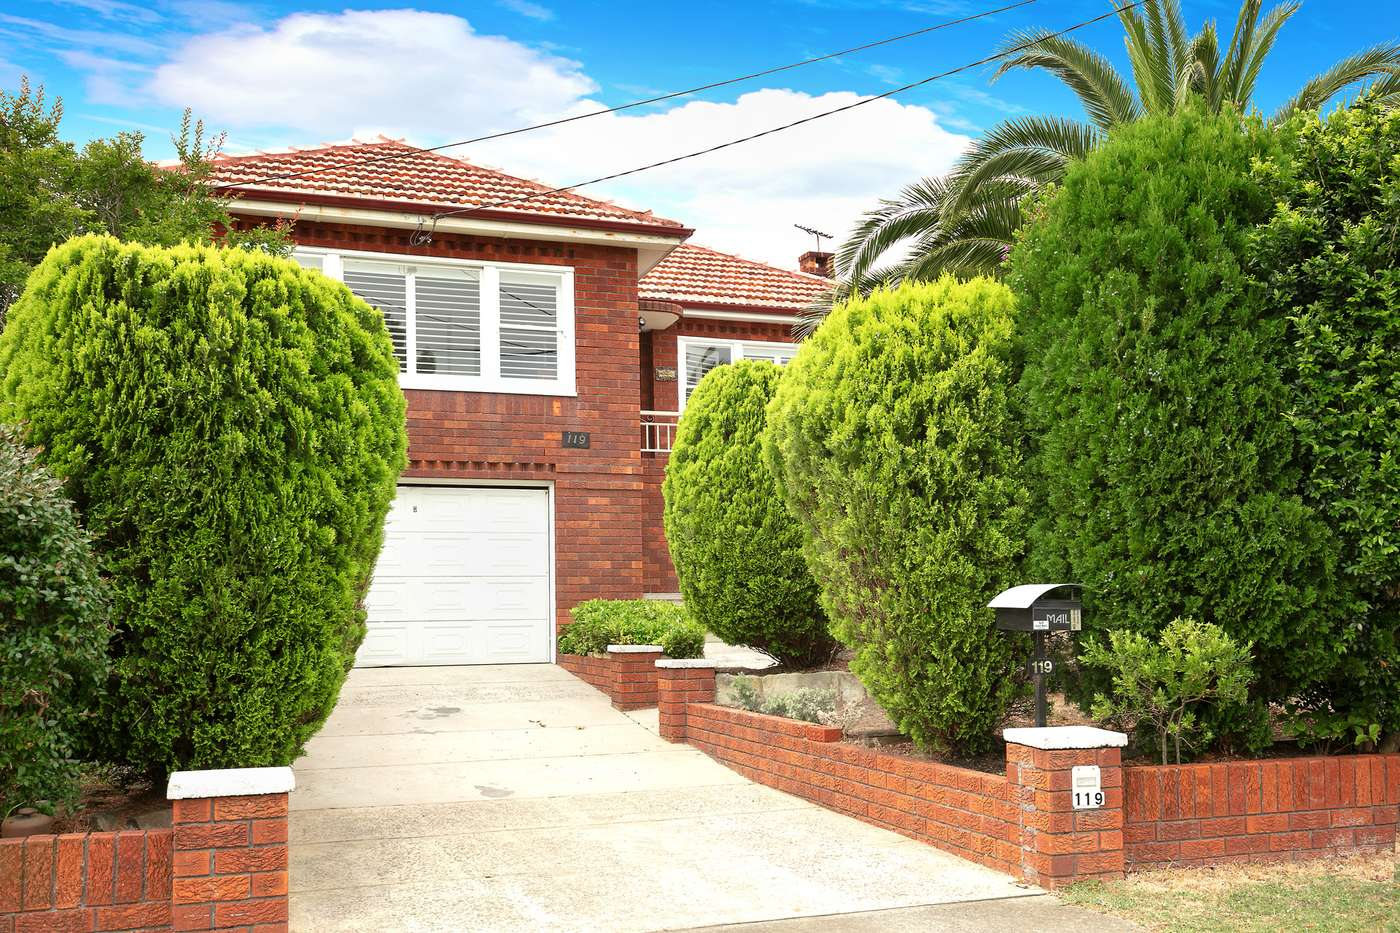 Main view of Homely house listing, 119 Soldiers Avenue, Freshwater, NSW 2096